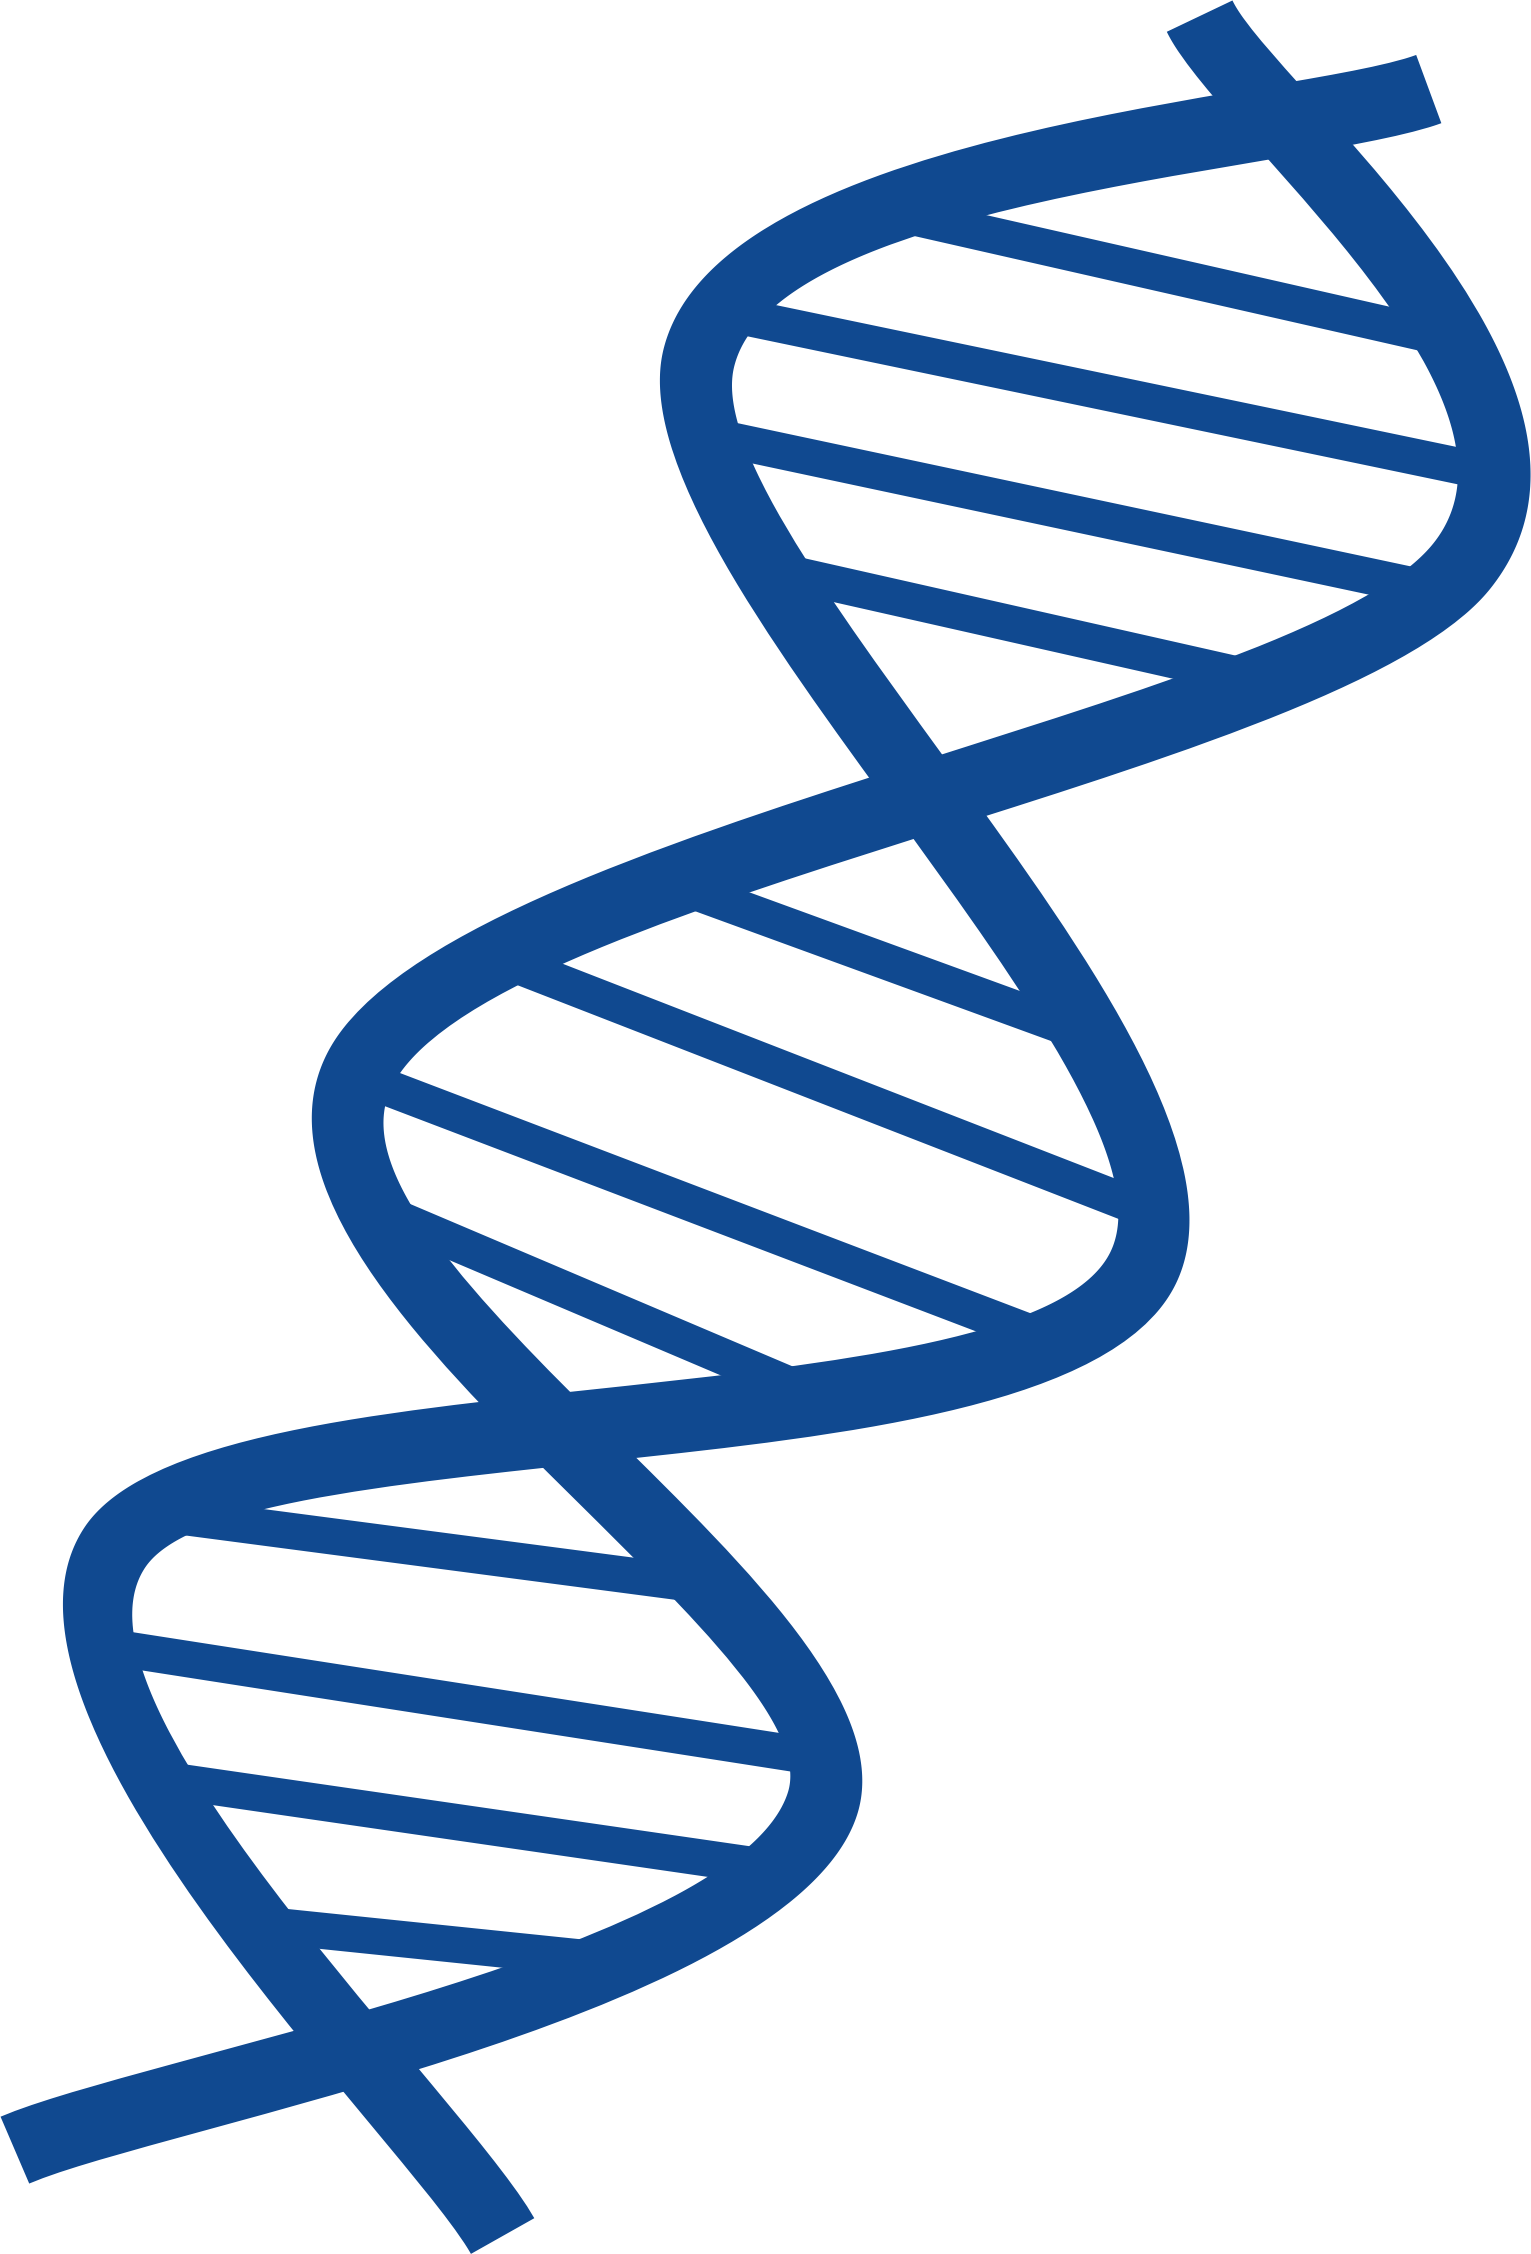 png free stock Image result for DNA art blue